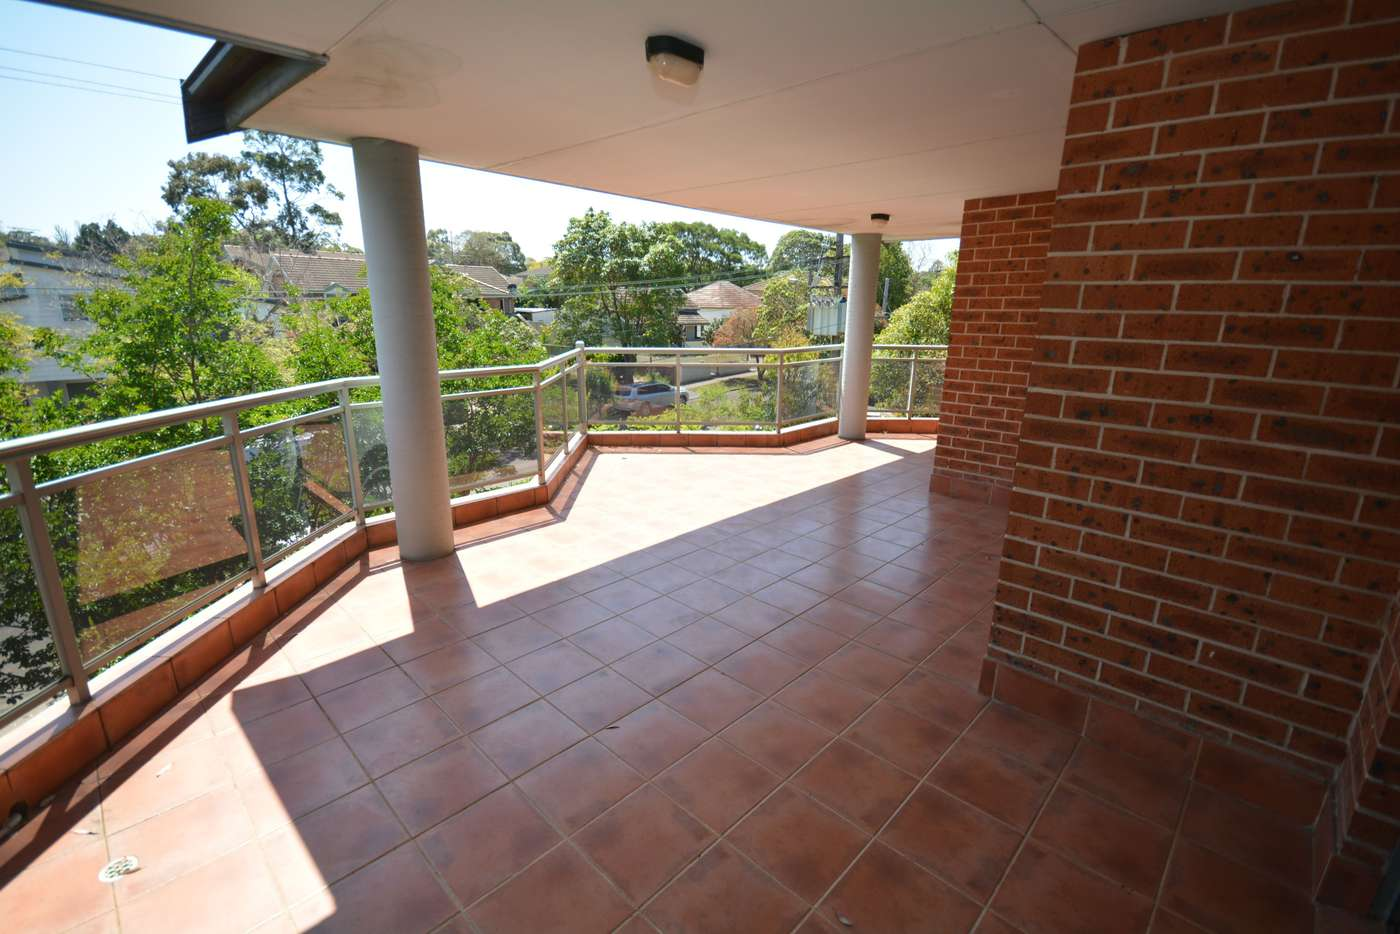 Seventh view of Homely apartment listing, 7/9-11 Belmore Street, North Parramatta NSW 2151